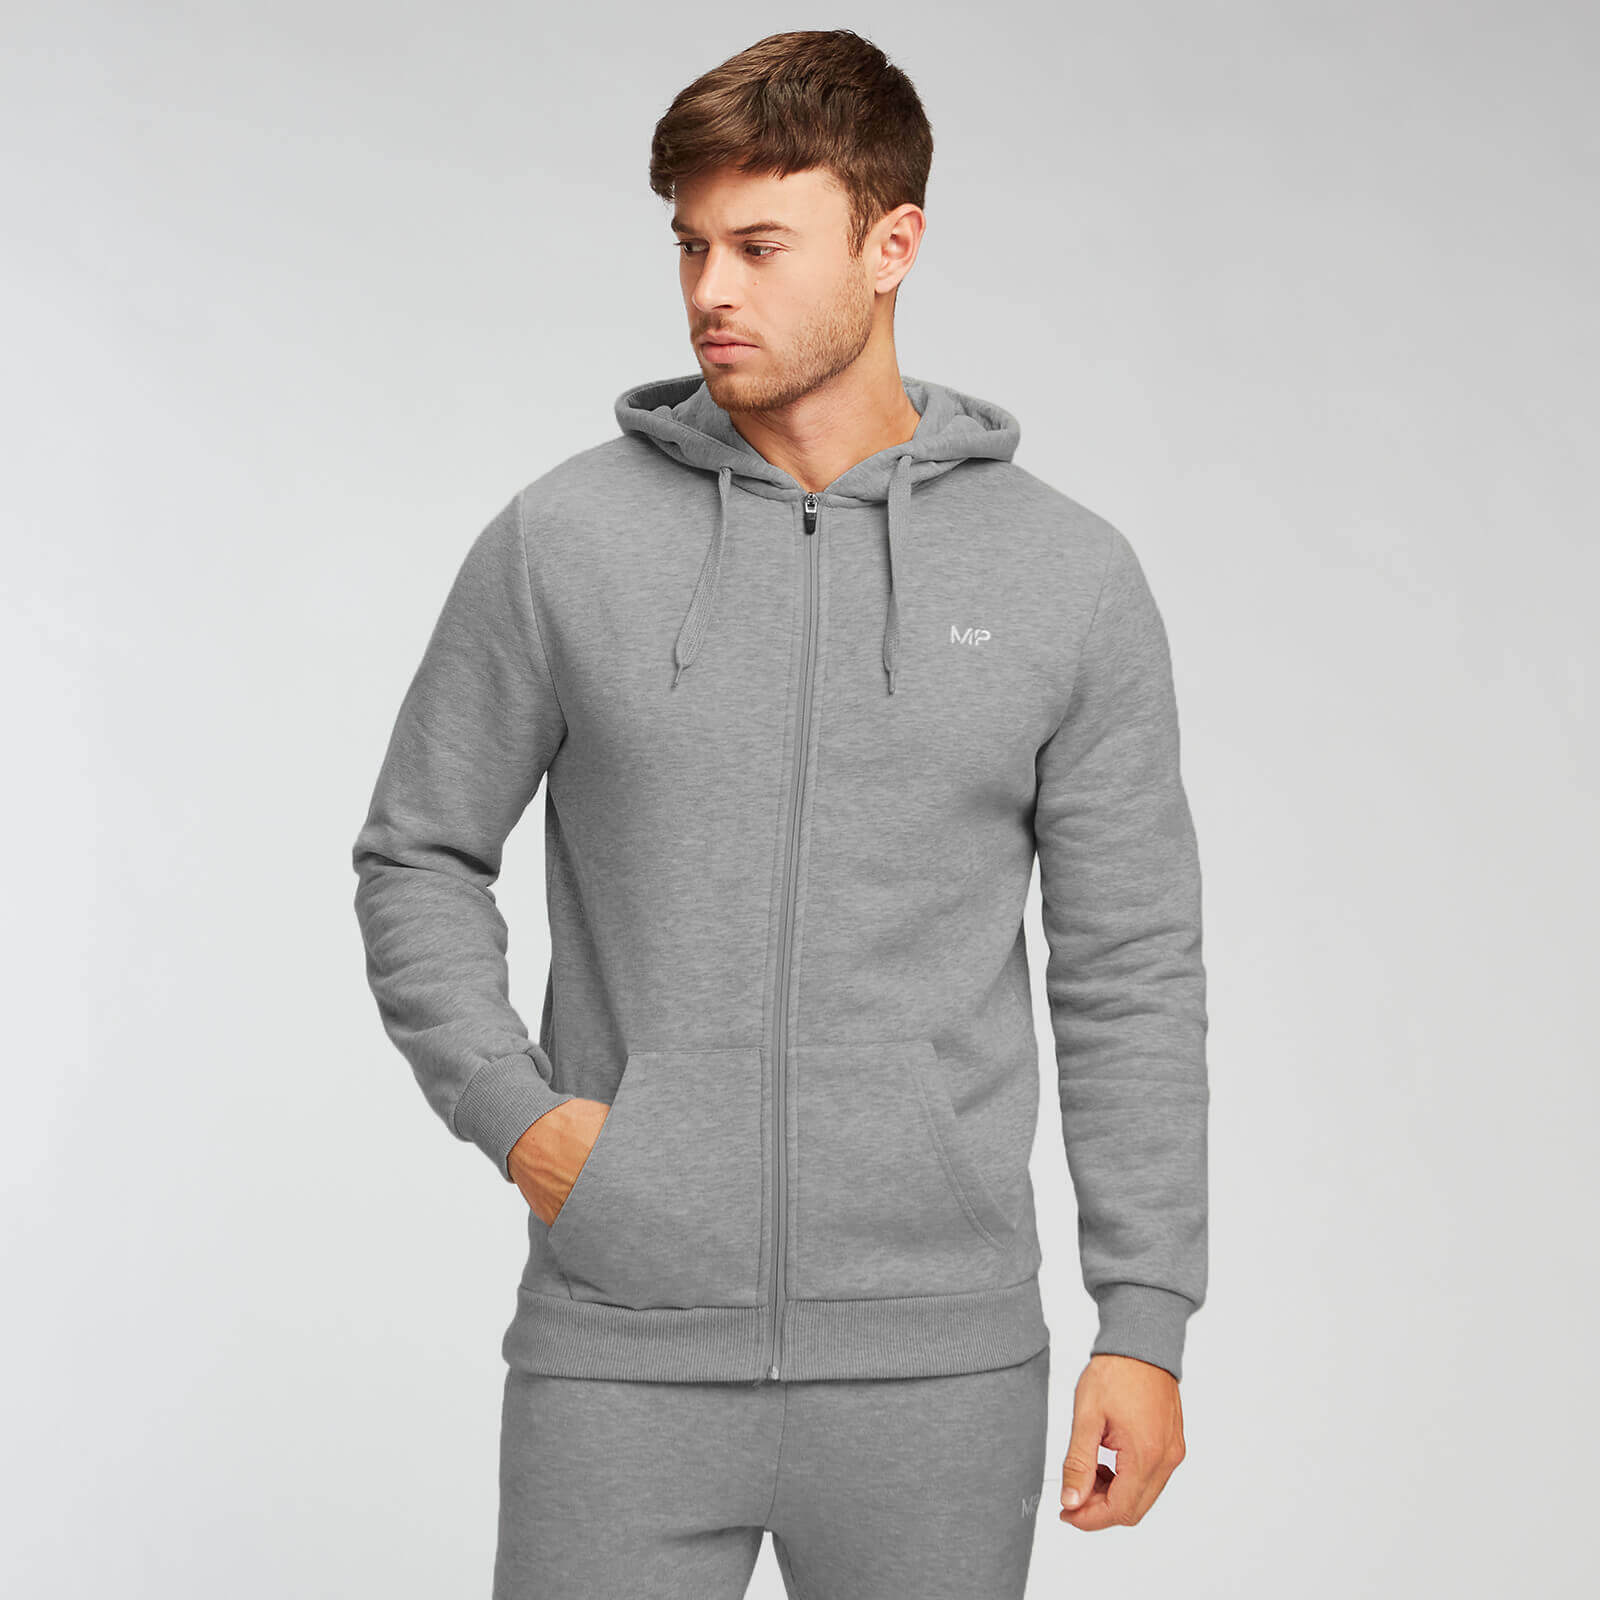 Sweat à capuche zippé MP Essentials pour hommes – Gris chiné - XS